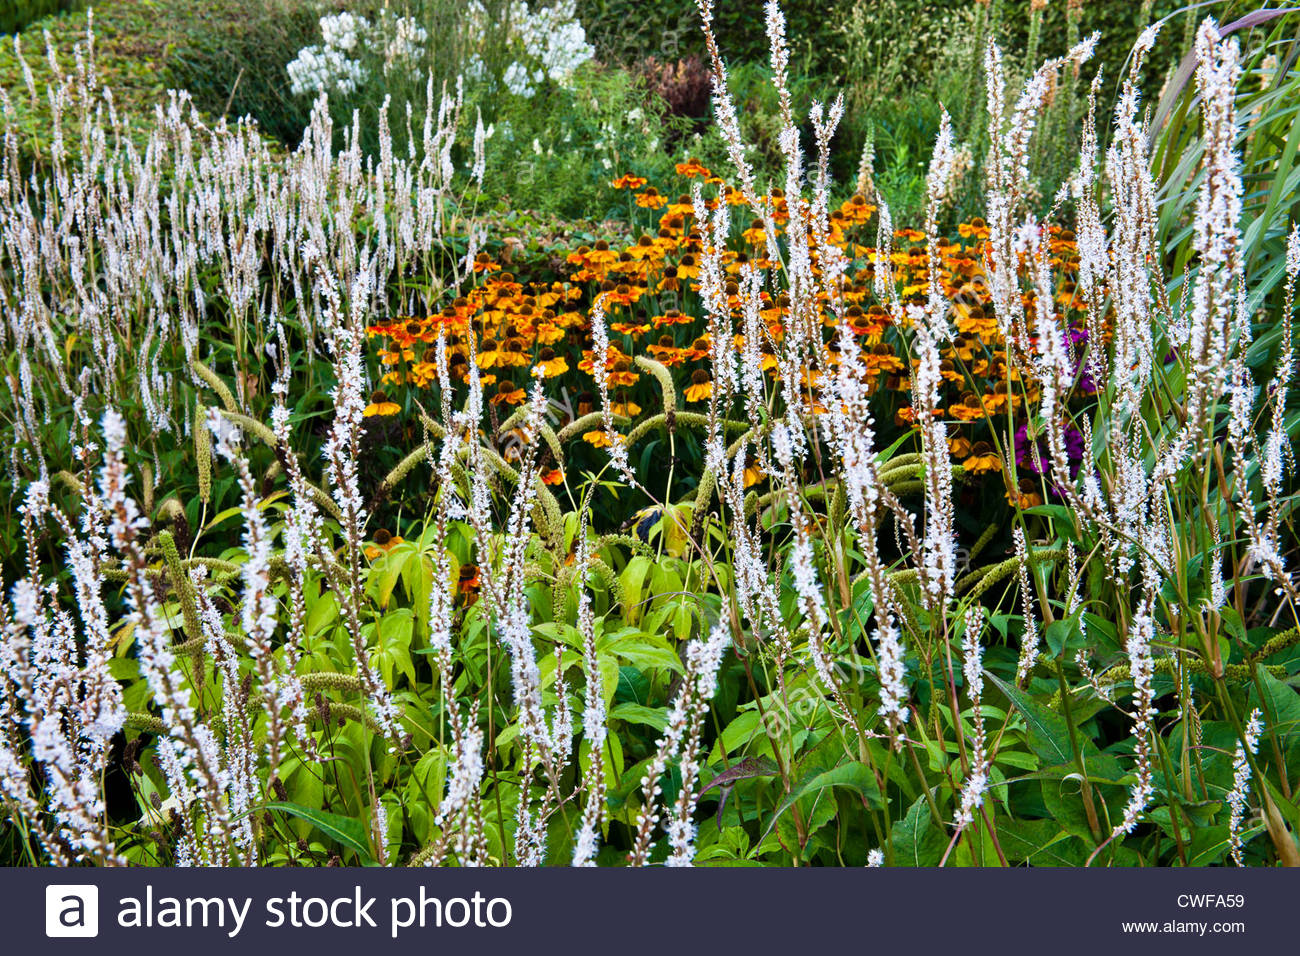 knotweed Persicaria amplexicaulis Alba common sneezeweed Helenium Ring of Fire autumnale polymorpha ornamental grasses - Stock Image